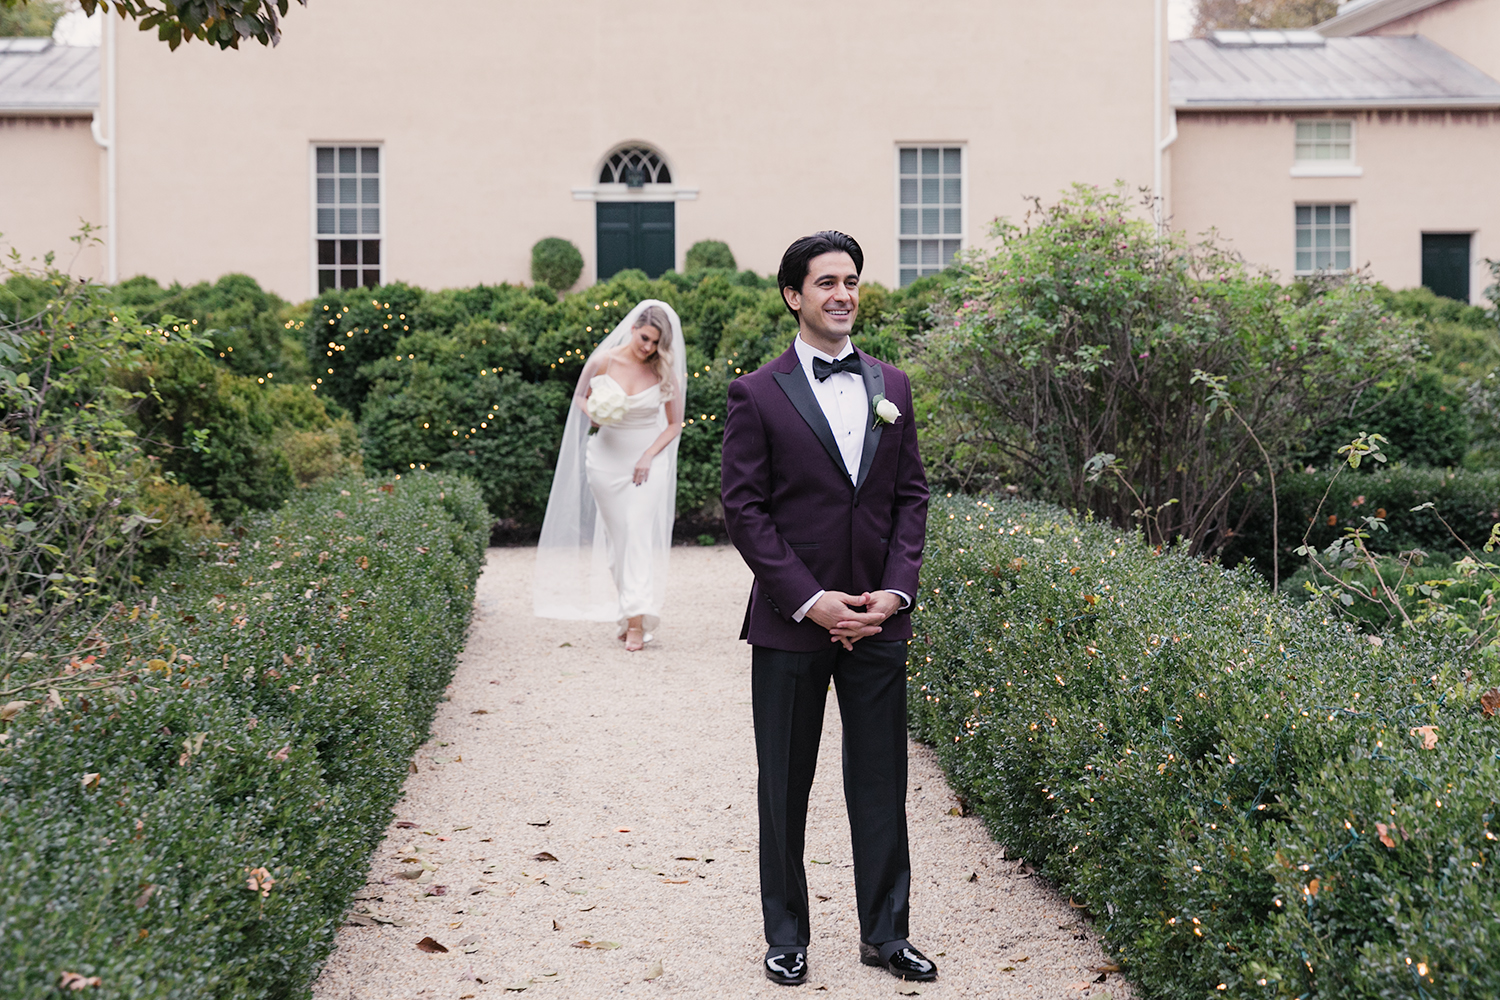 image of Tudor Place wedding bride and groom first look approach at Tudor Place in Washington DC